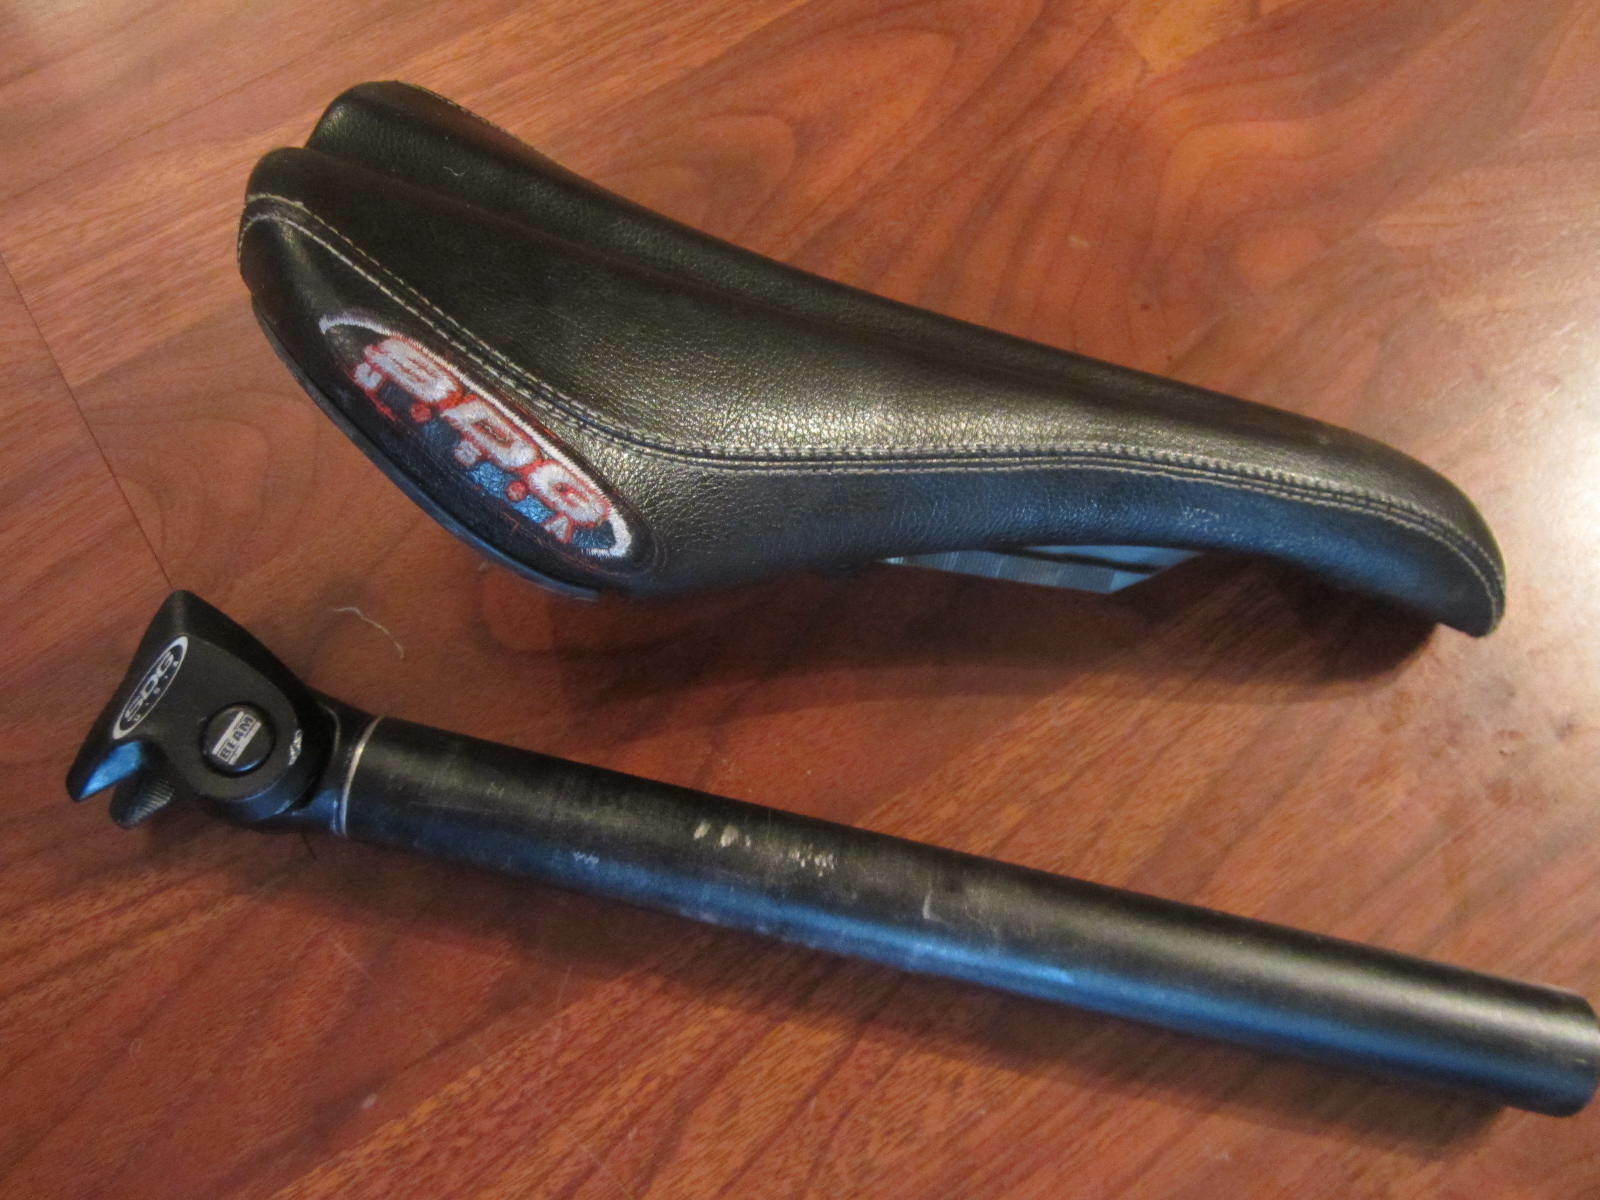 SDG USA BEL AIR SL I BEAM SADDLE WITH 27.2 x 300 SEATPOST